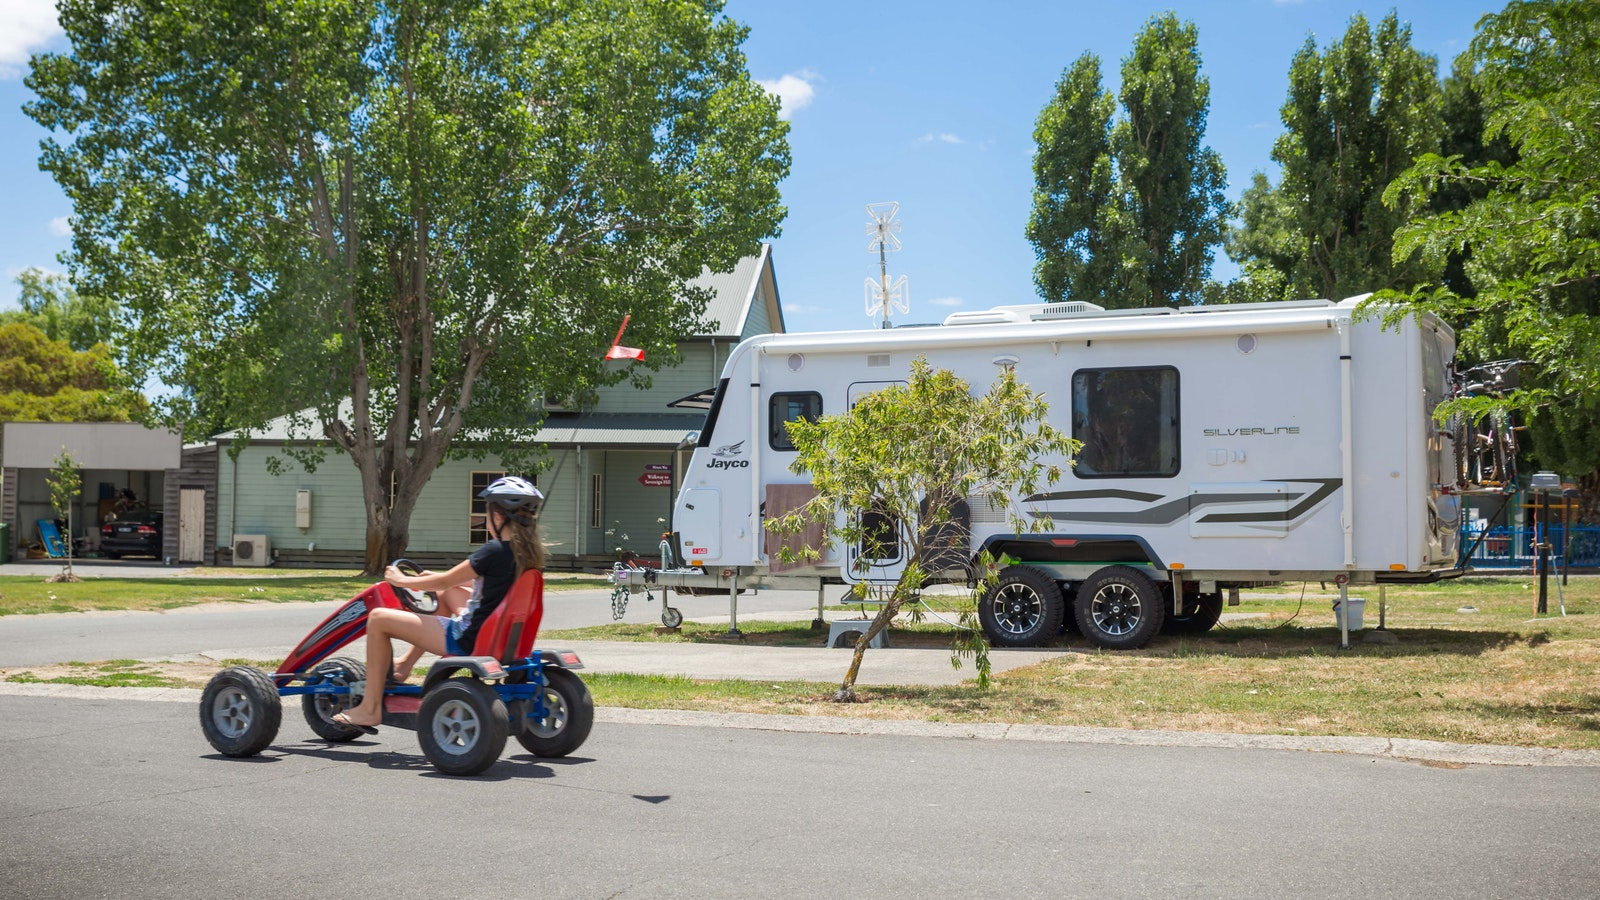 Sites for caravans and tents